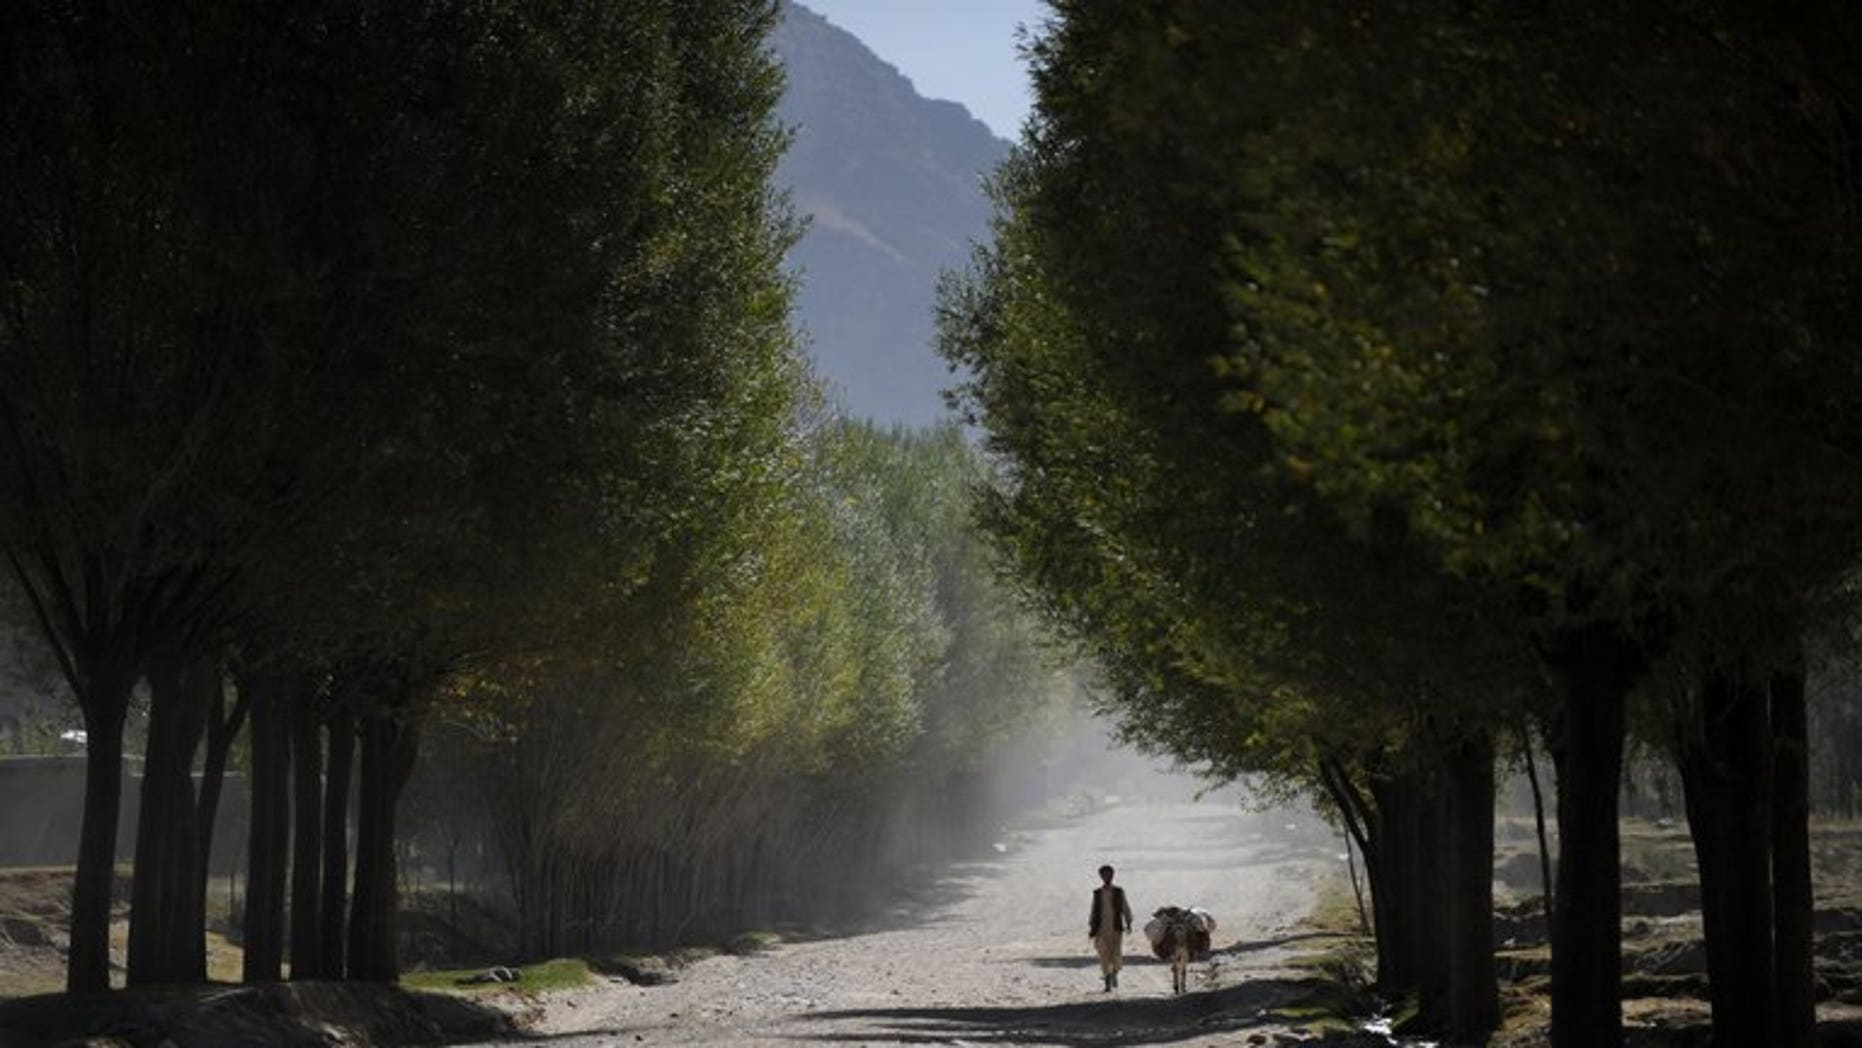 A villager walks with a donkey in Afghanistan's Badakhshan province, on October 5, 2012. A suicide bomber has riden a donkey into an Afghan and NATO military convoy, killing three Western soldiers and their Afghan interpreter, officials said.